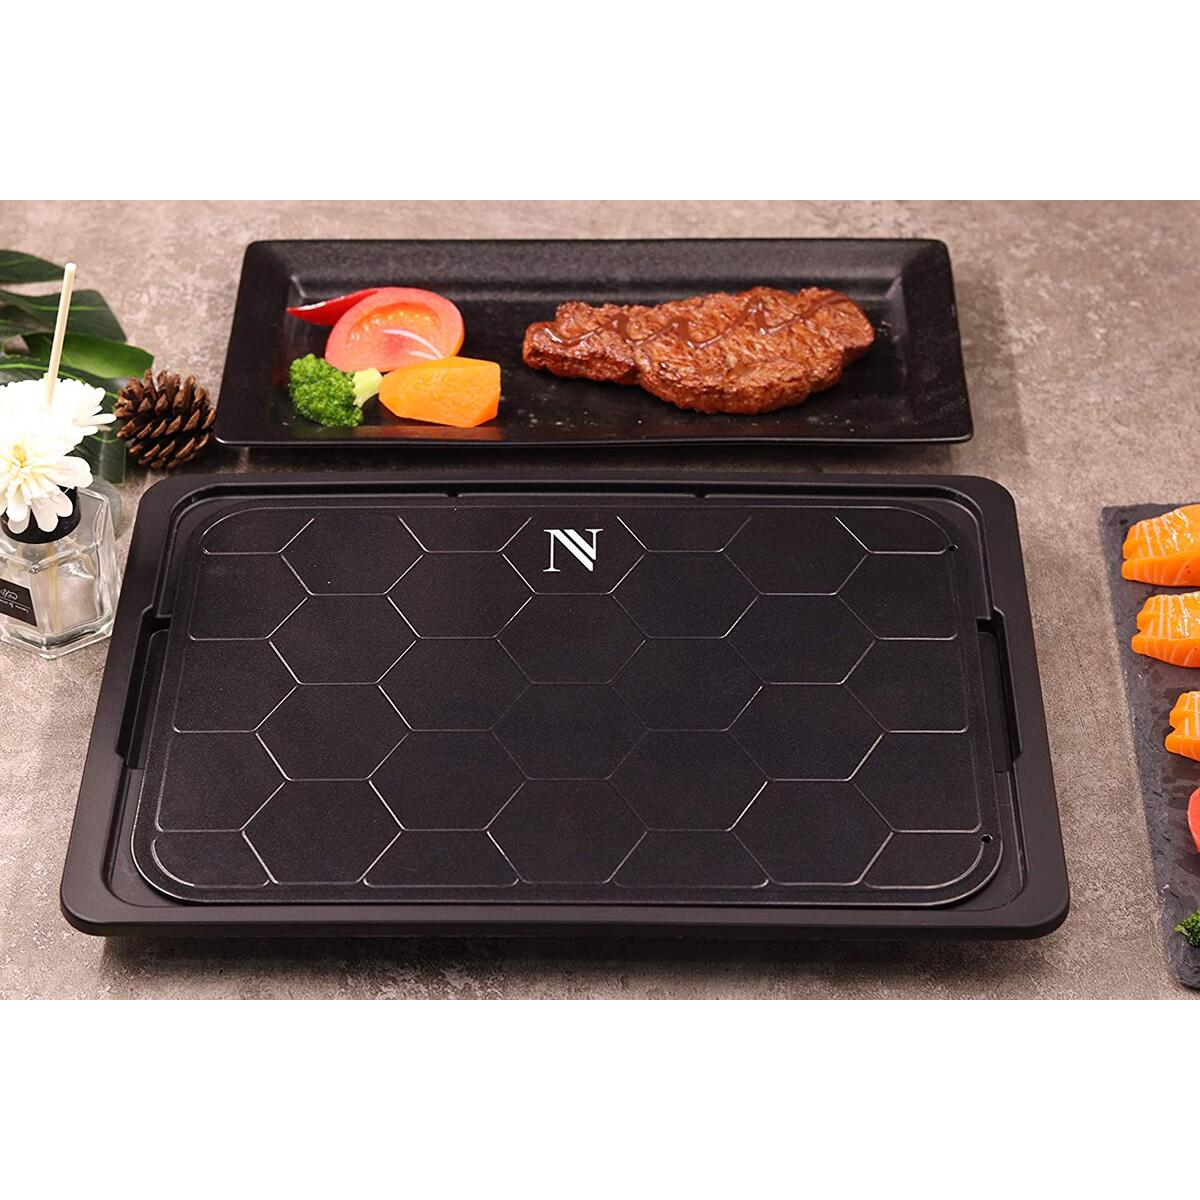 NANOBE Defrosting Tray Set - Fast Defroster Plate for Frozen Foods with Drip Tray - Quick Thaw of Meat, Fish, Vegetables - Includes Silicone Sponge, Basting Brush, Tenderizer, Tongs - Non-Electric